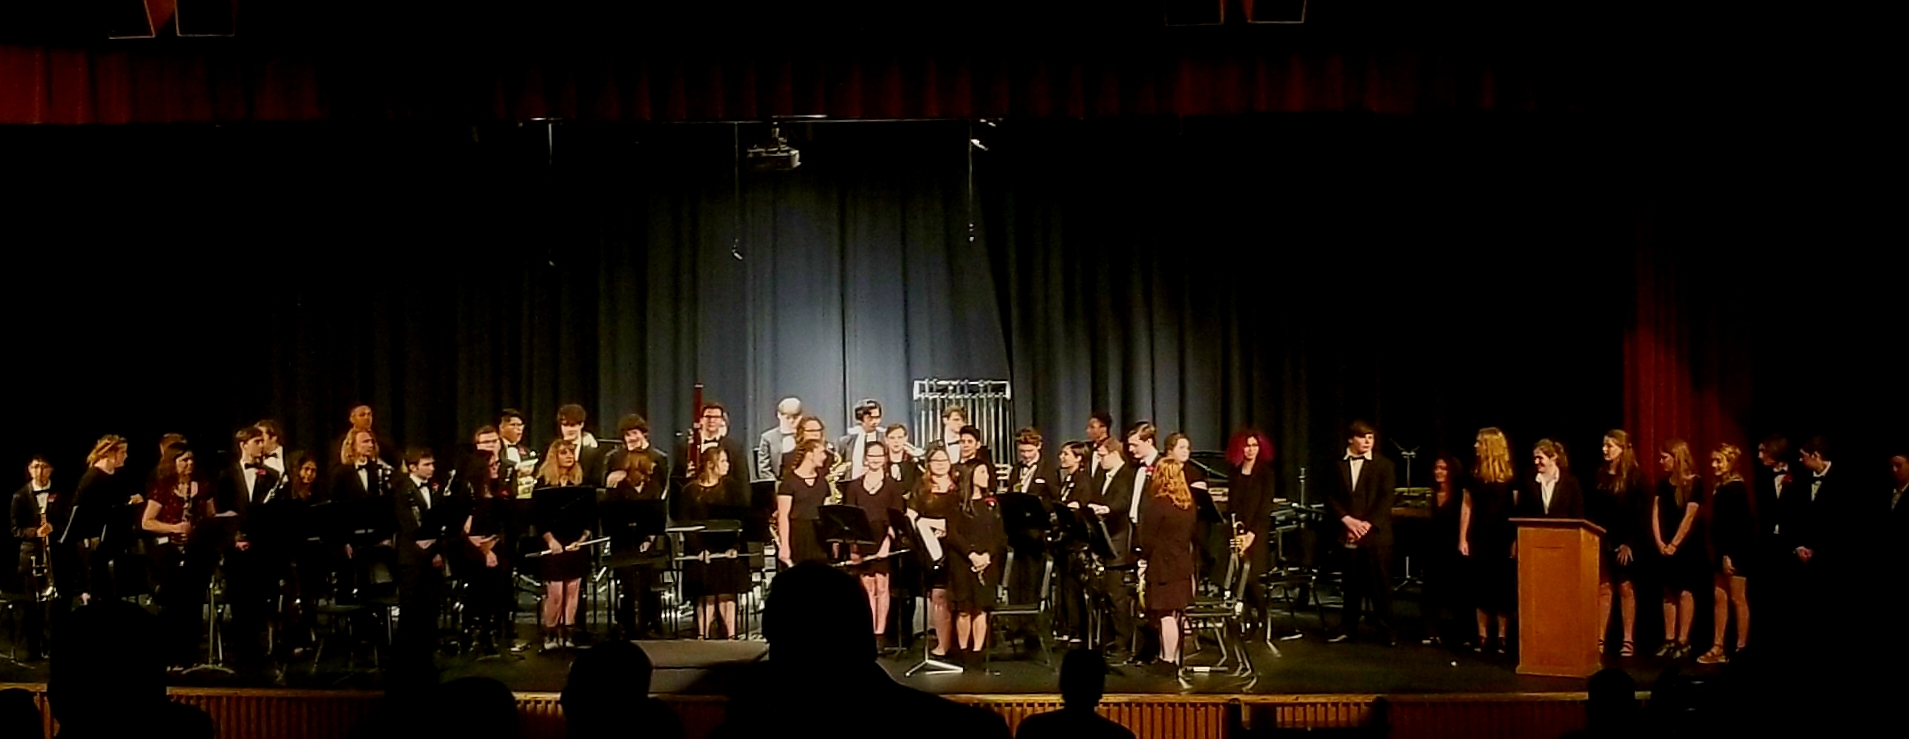 Central High School Band Concert, May 7, 2019